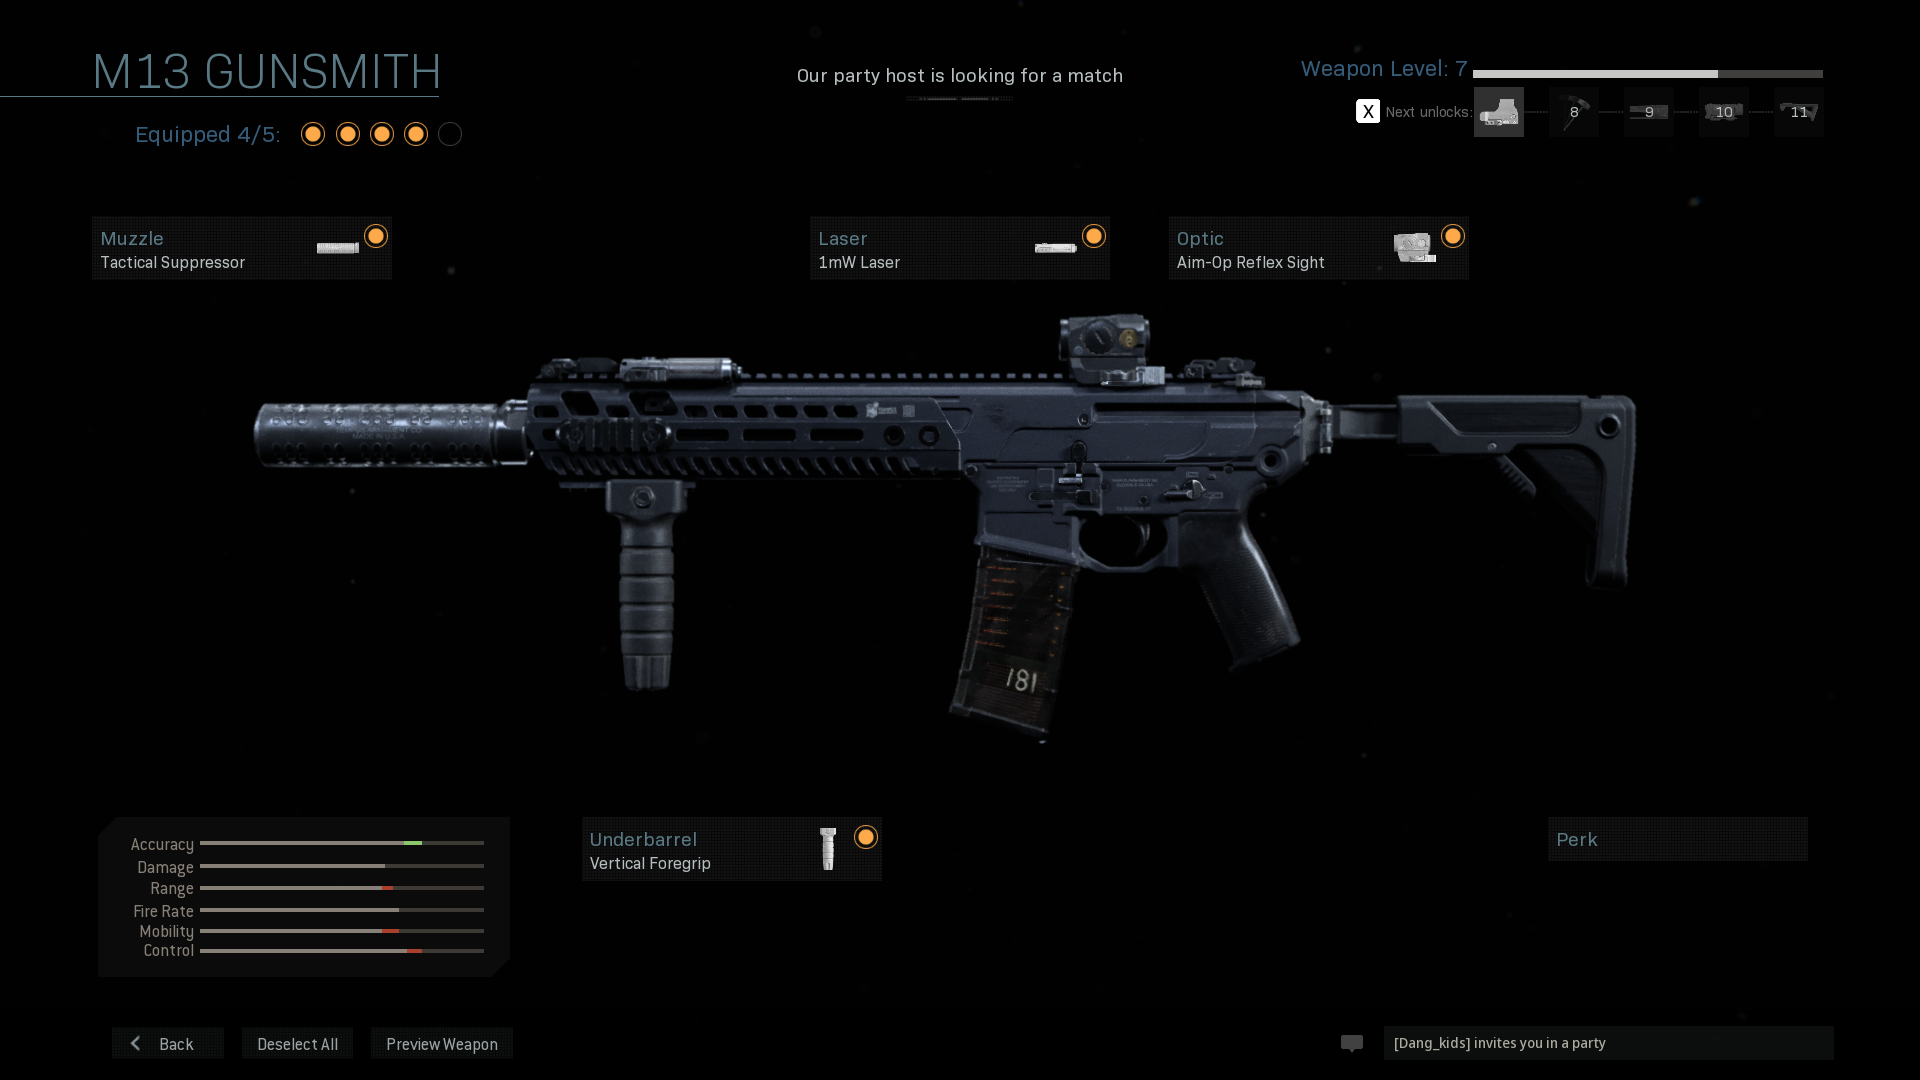 As you level up, more and more attachments become visible to unlock and use for the weapon.